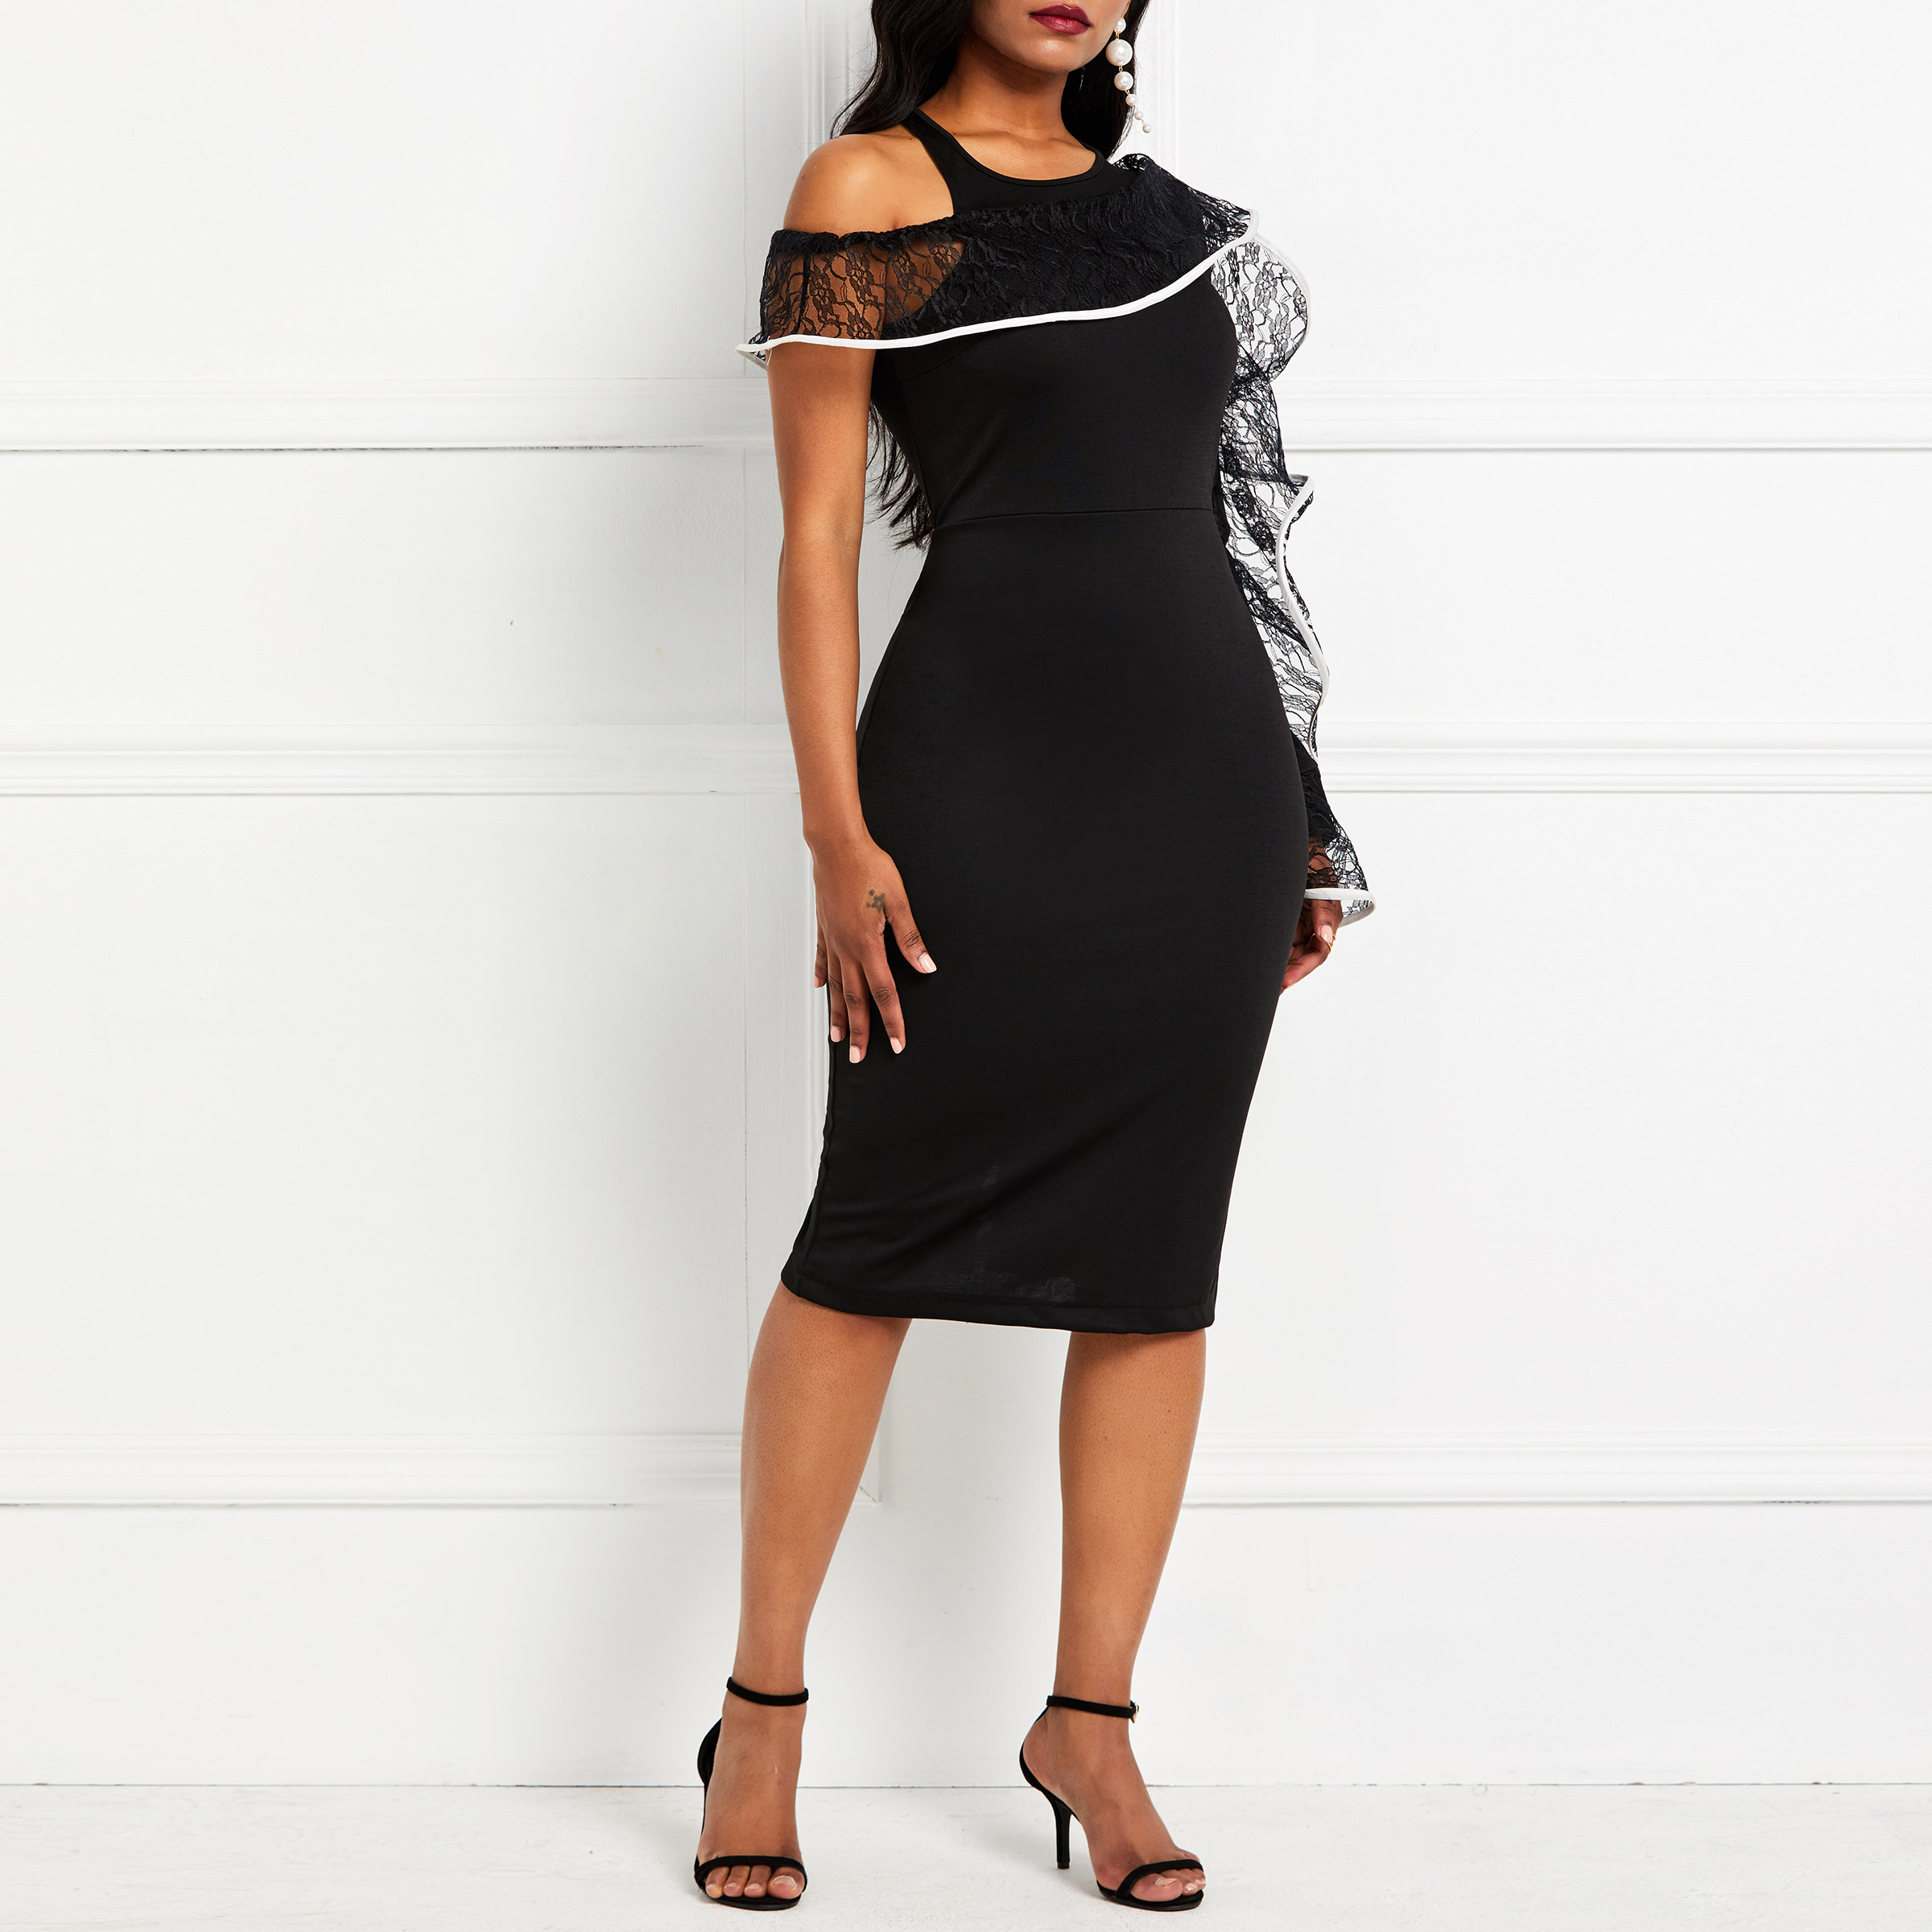 Party Bodycon Dress 2019 Women Sexy One Shoulder Long Sleeve Tight Club Summer Evening Elegant Black Lace Ruffle Midi Dresses in Dresses from Women 39 s Clothing